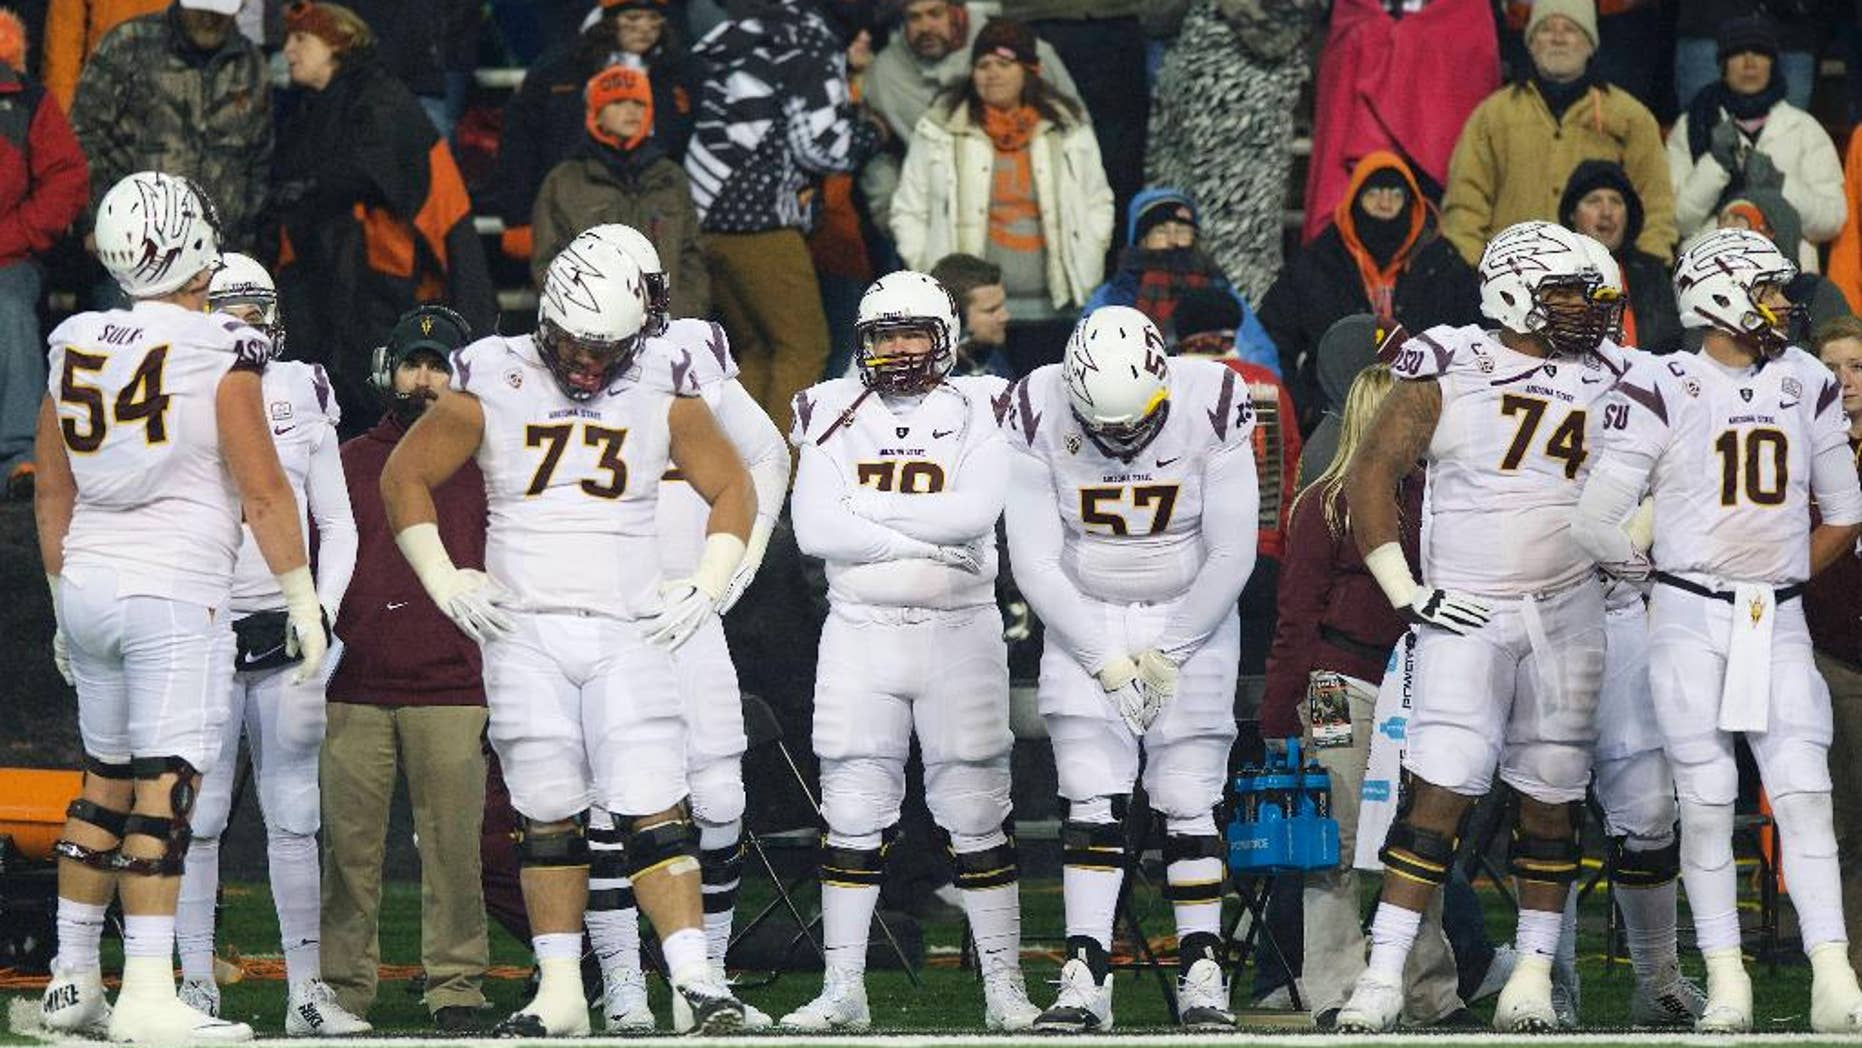 The Arizona State football team watch from the sidelines as time runs down during an NCAA college football game against Oregon State in Corvallis, Or., Saturday, Nov. 15, 2014. The Beavers beat the Sun Devils 35-27. (AP Photo/Troy Wayrynen)